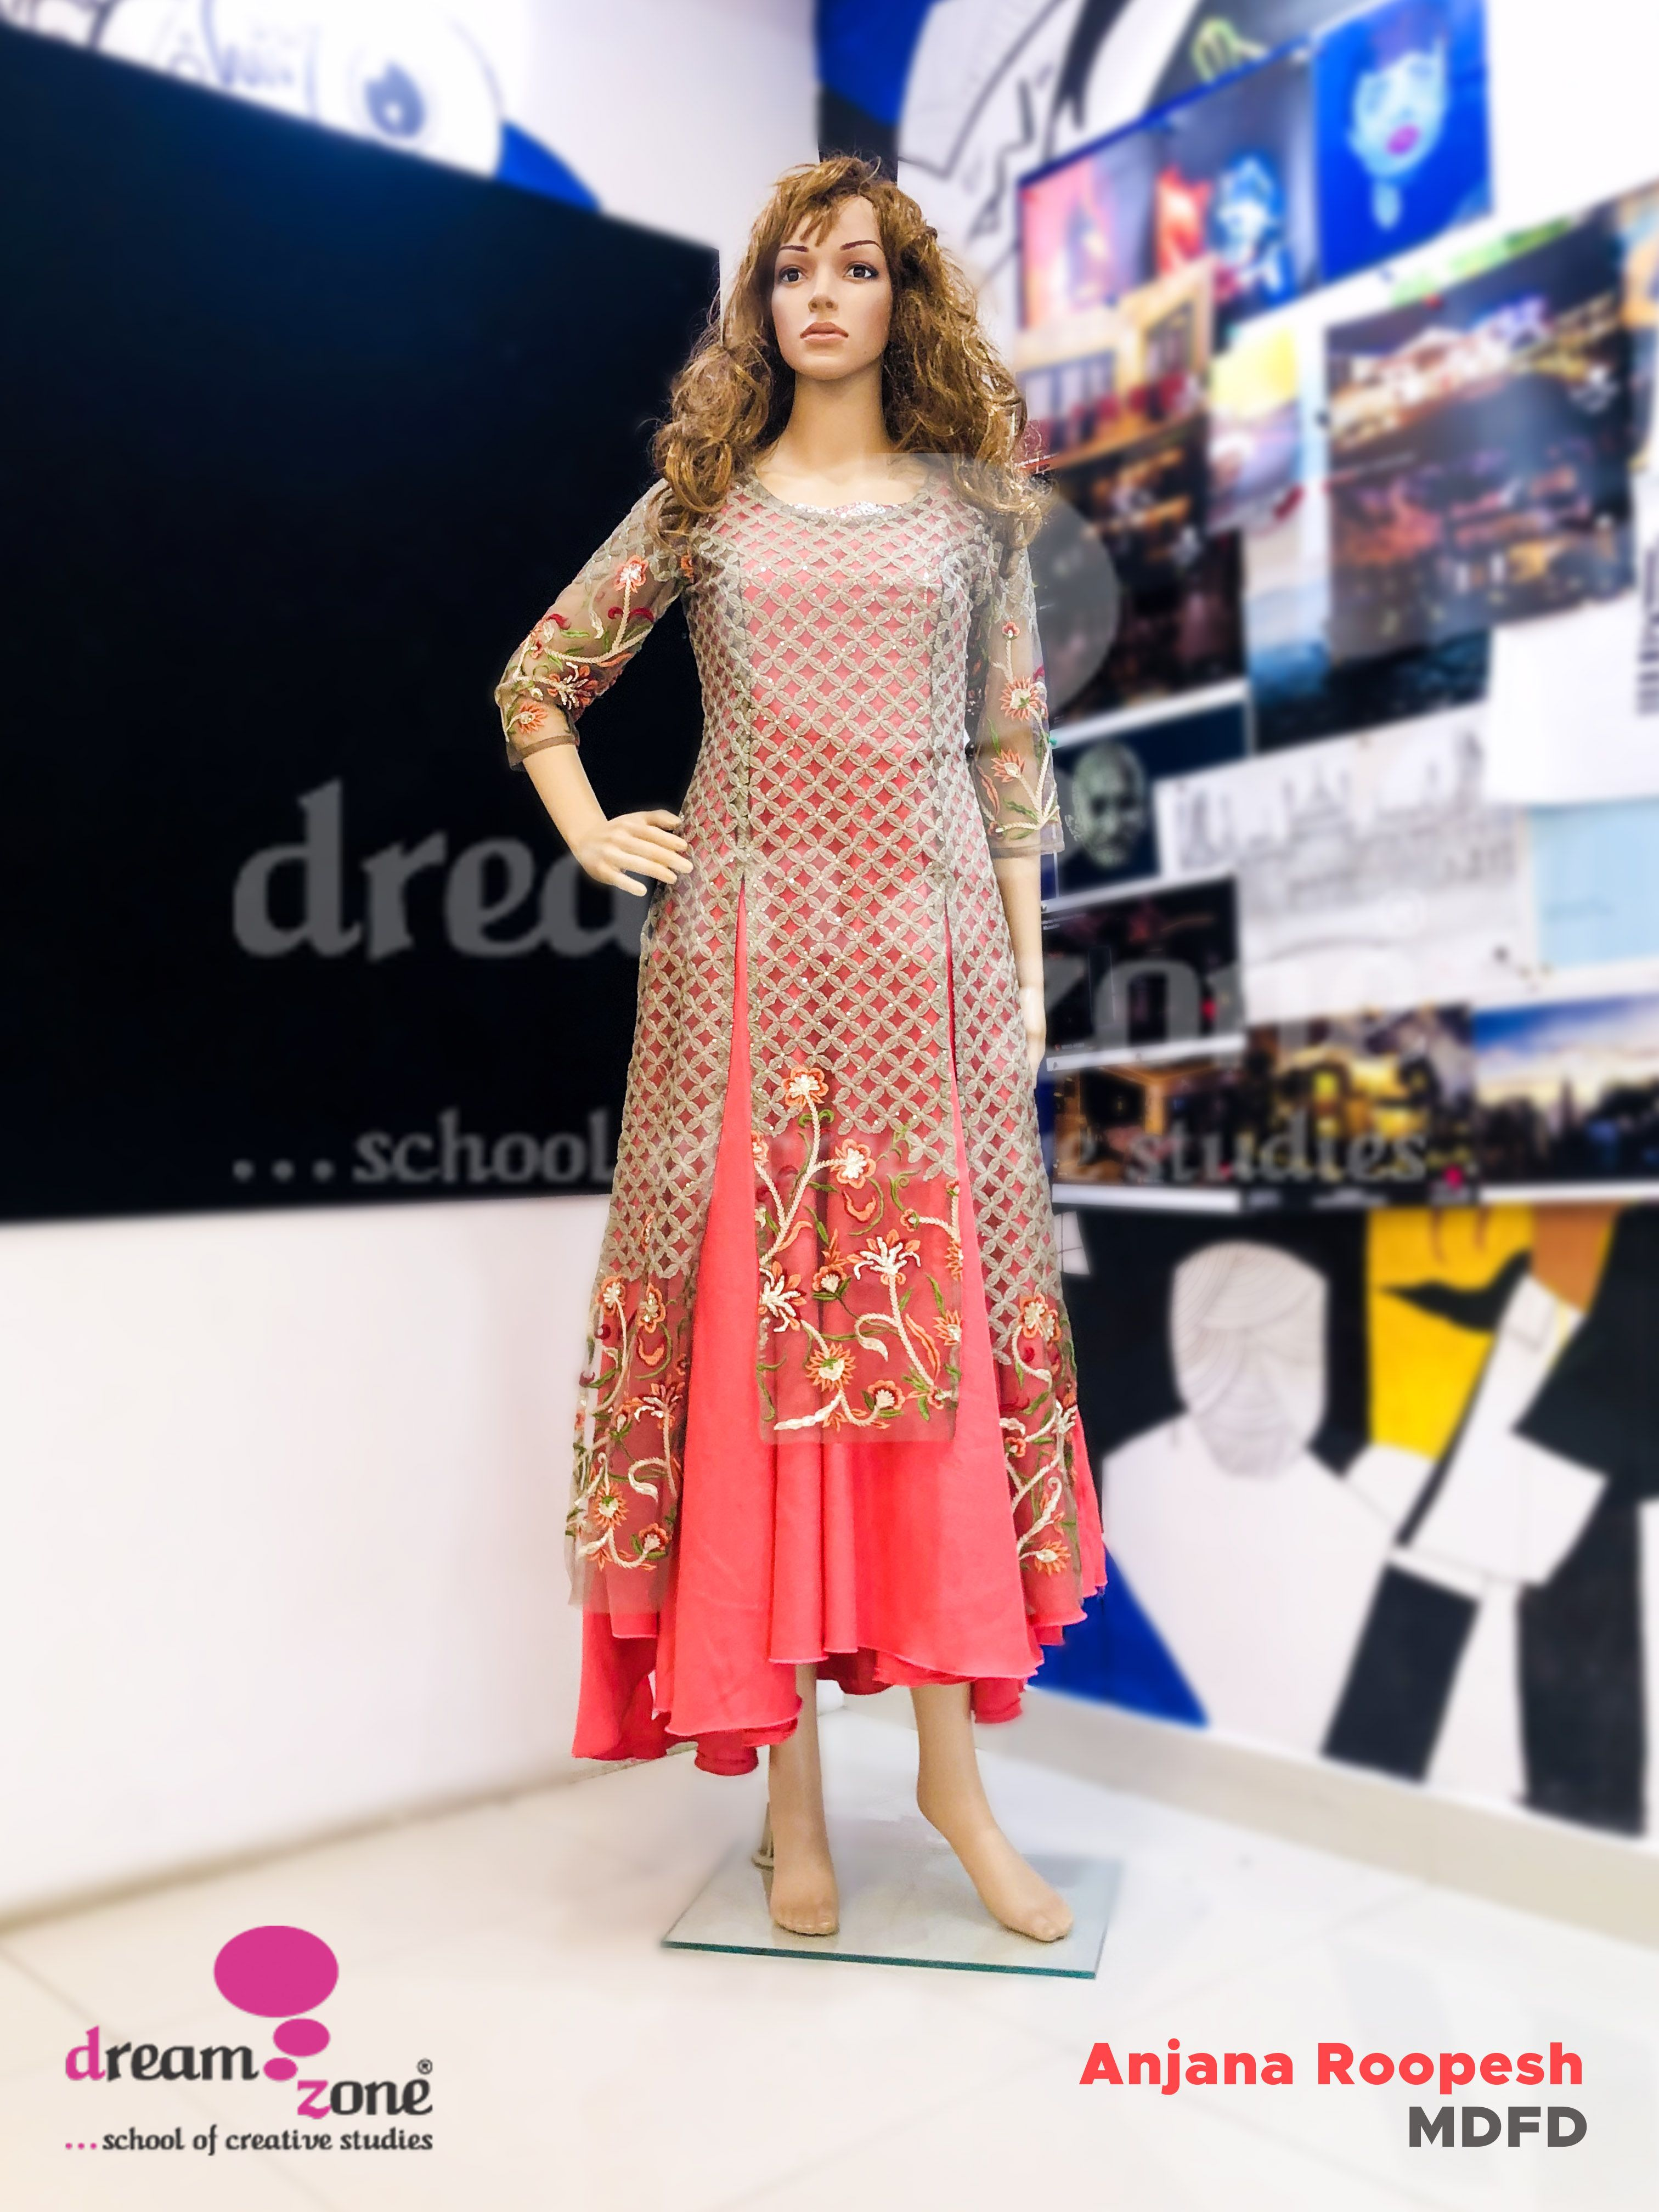 Dreamzone S School Of Fashion Design Engages Students In The Creative Science Of Aligning With Images Fashion Designing Course Diploma In Fashion Designing Fashion Design